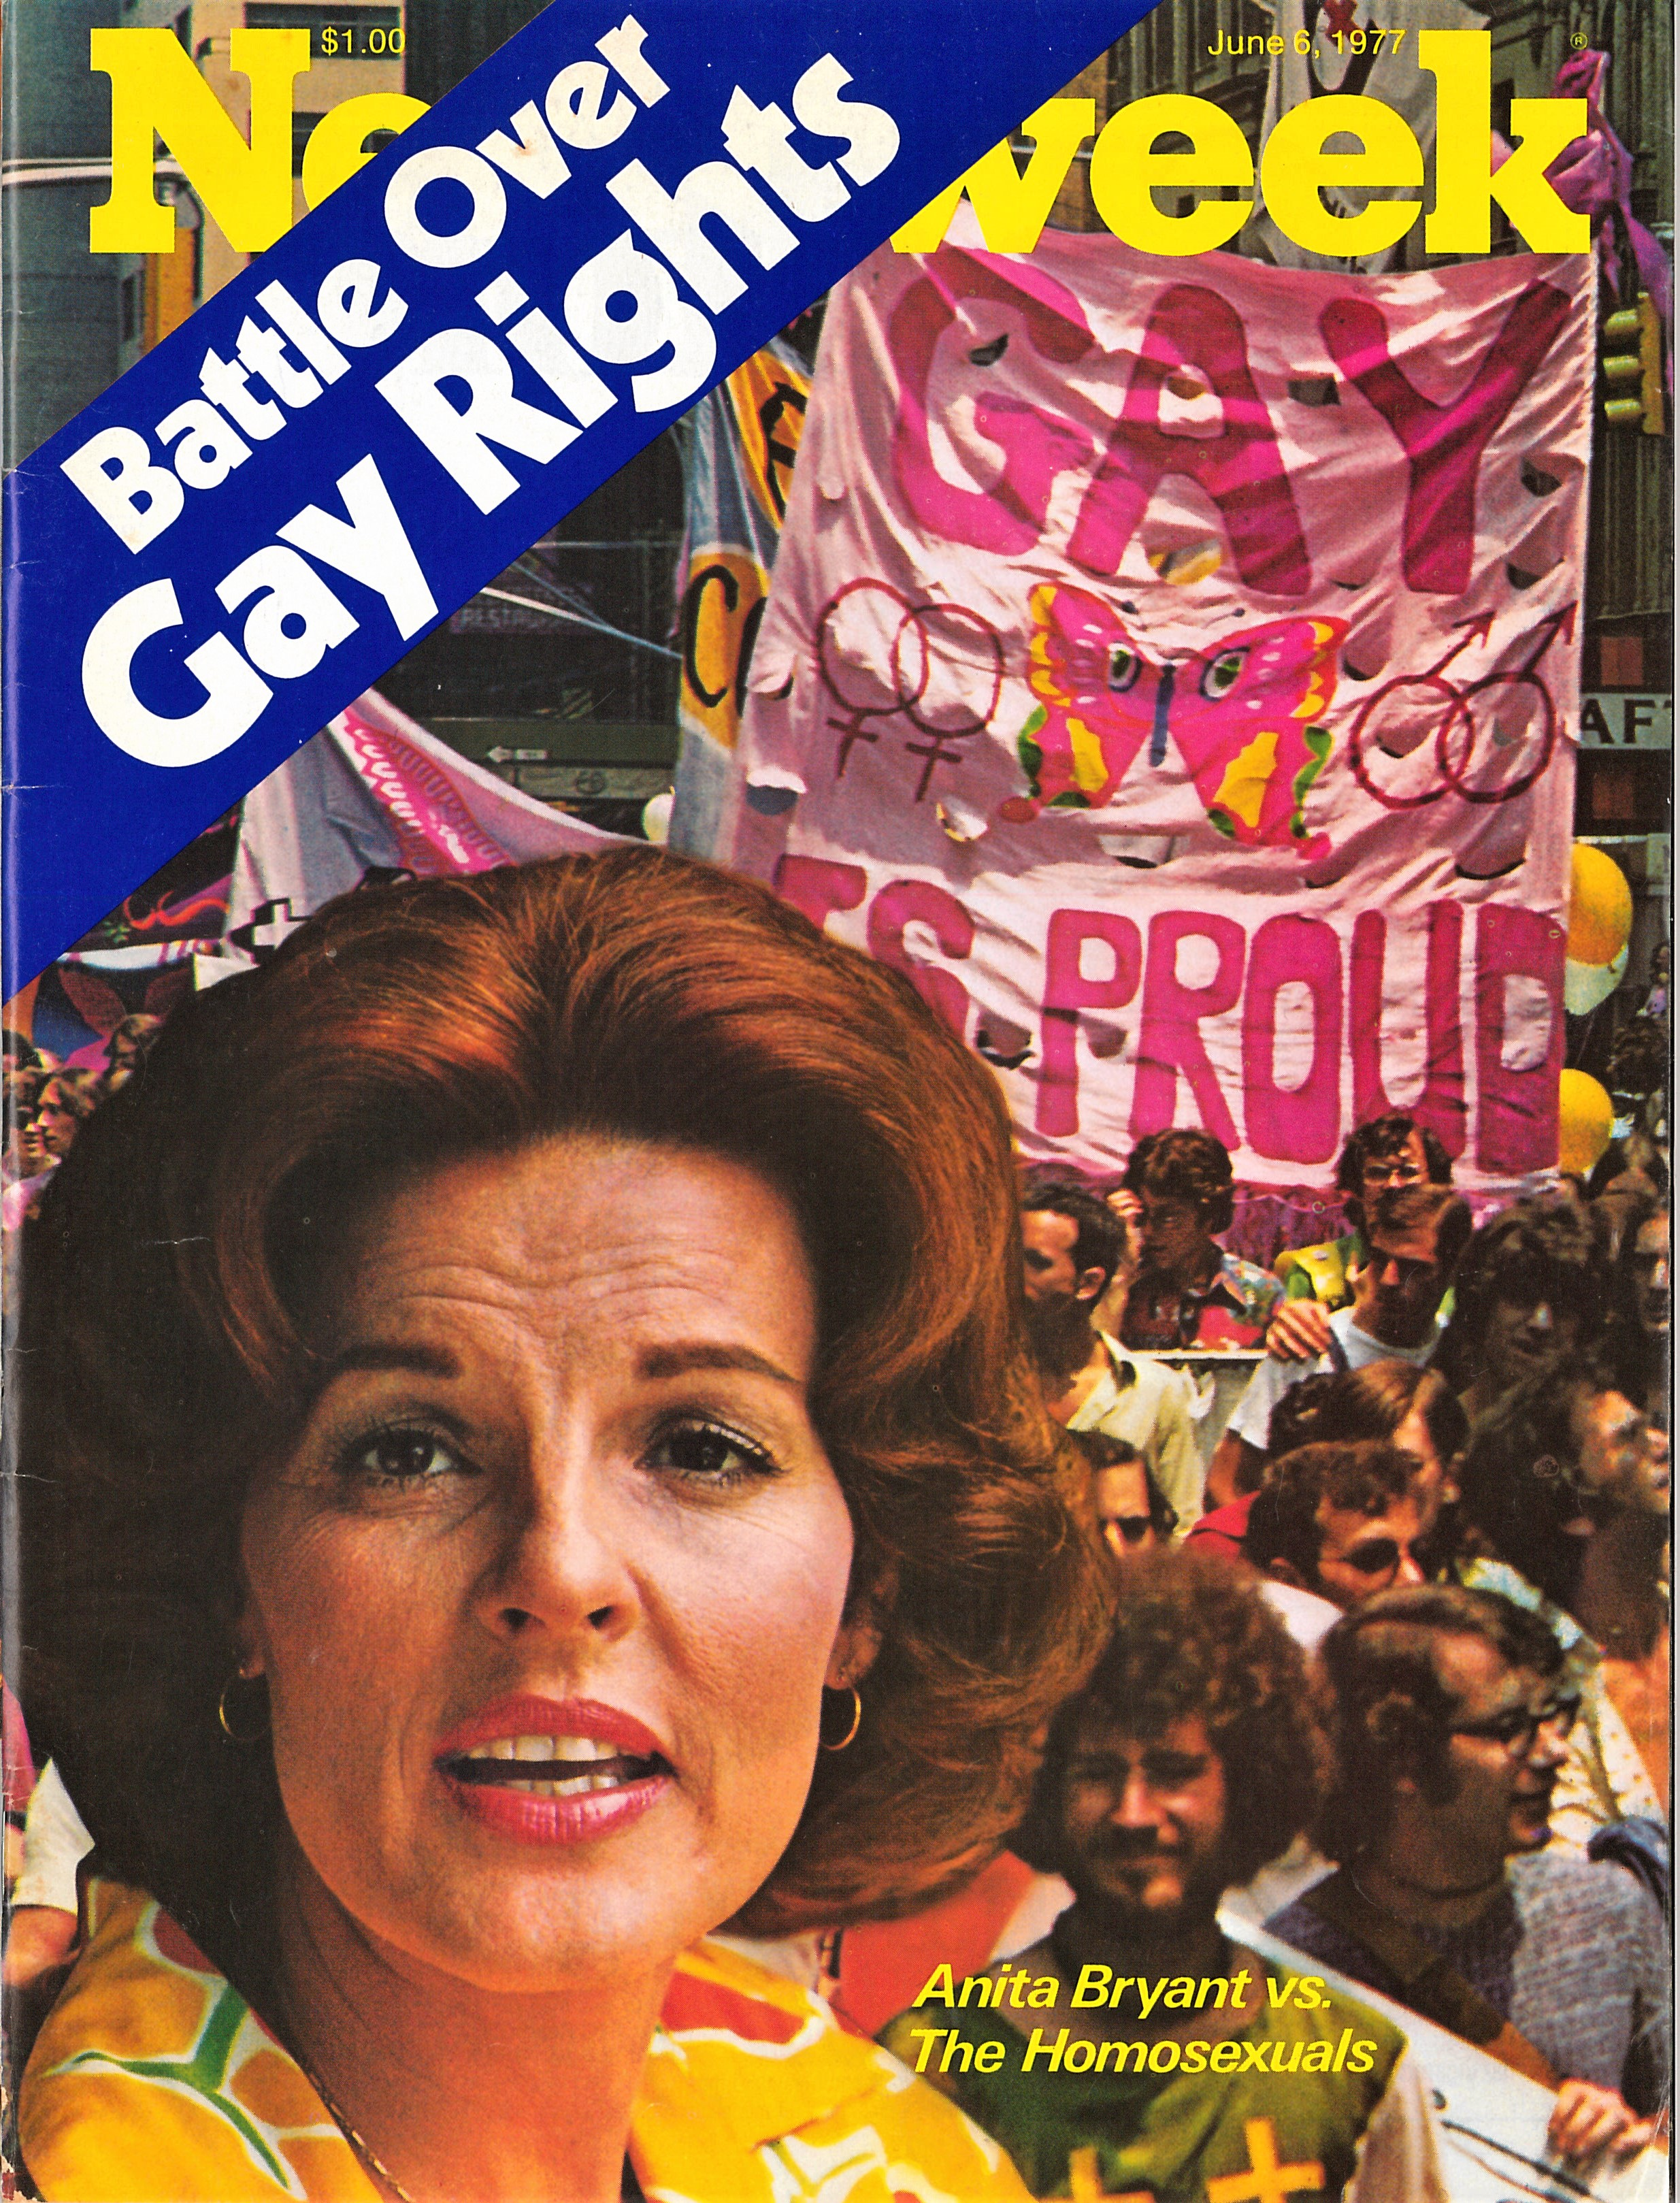 Newsweek magazine with Anita Bryant on the front cover